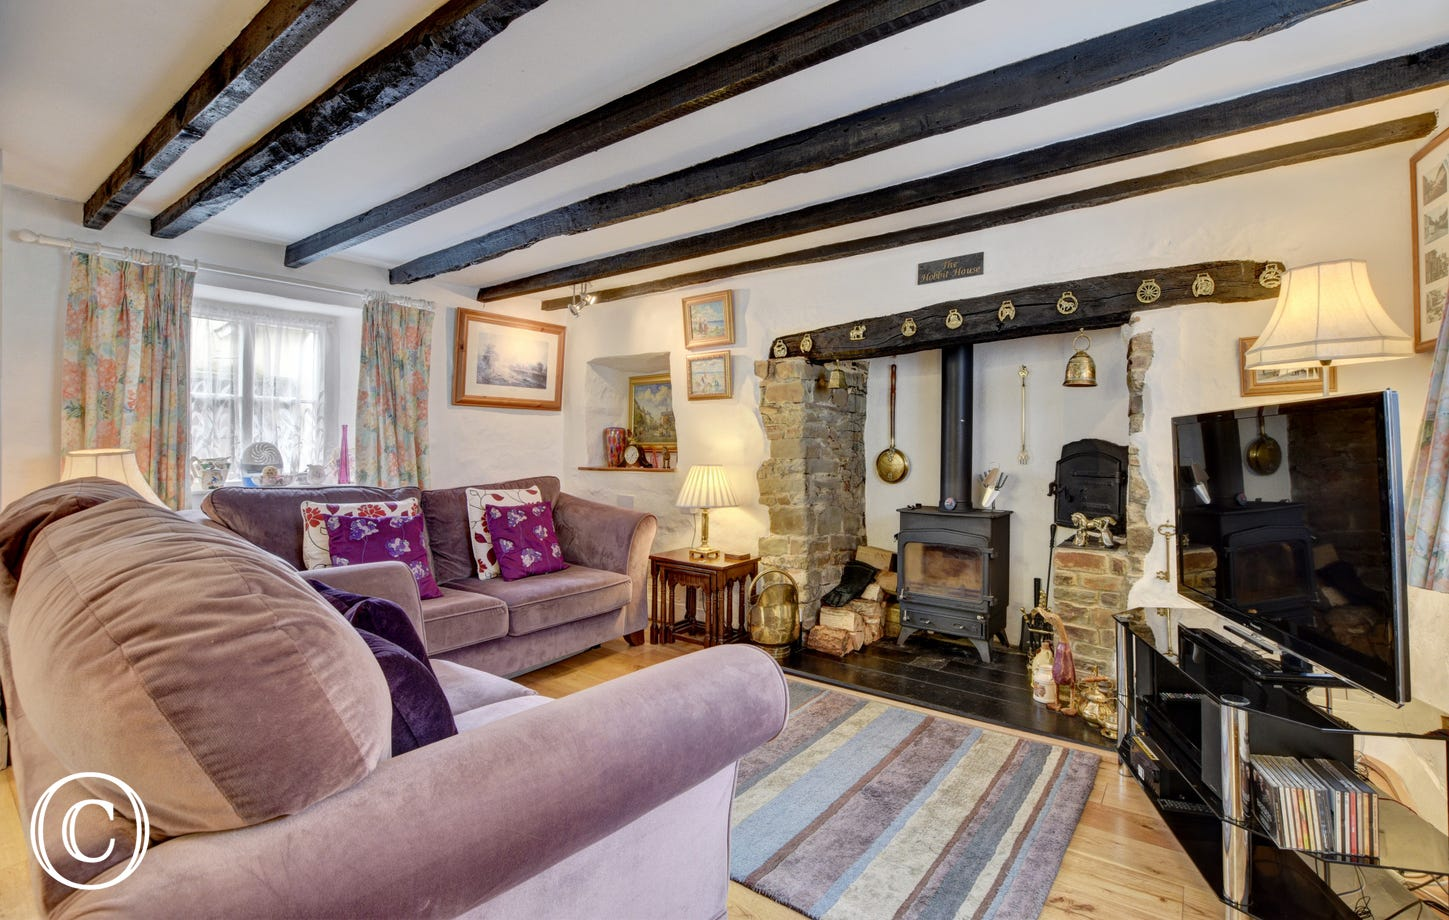 The sitting room has exposed beams and an inglenook fireplace